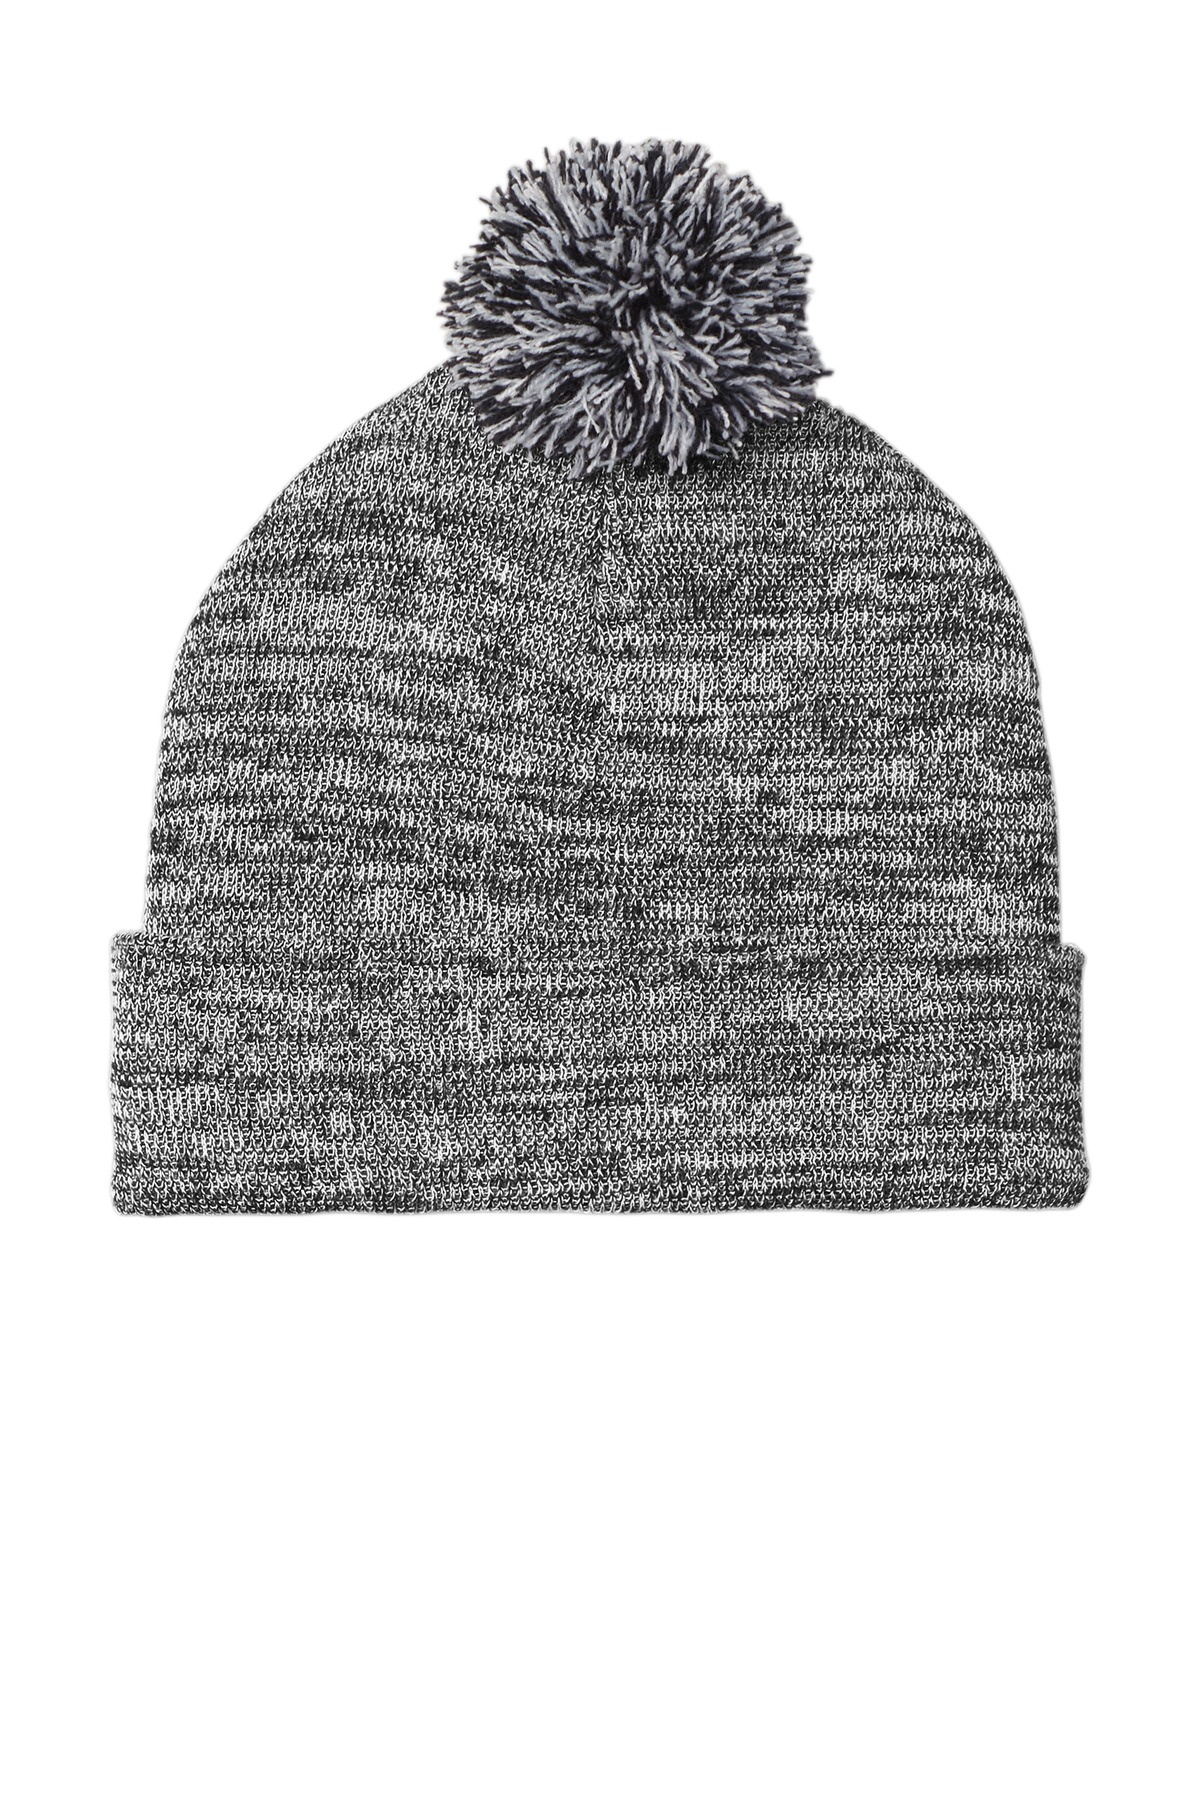 Sport-Tek  ®  Heather Pom Pom Beanie STC41 - Grey Heather